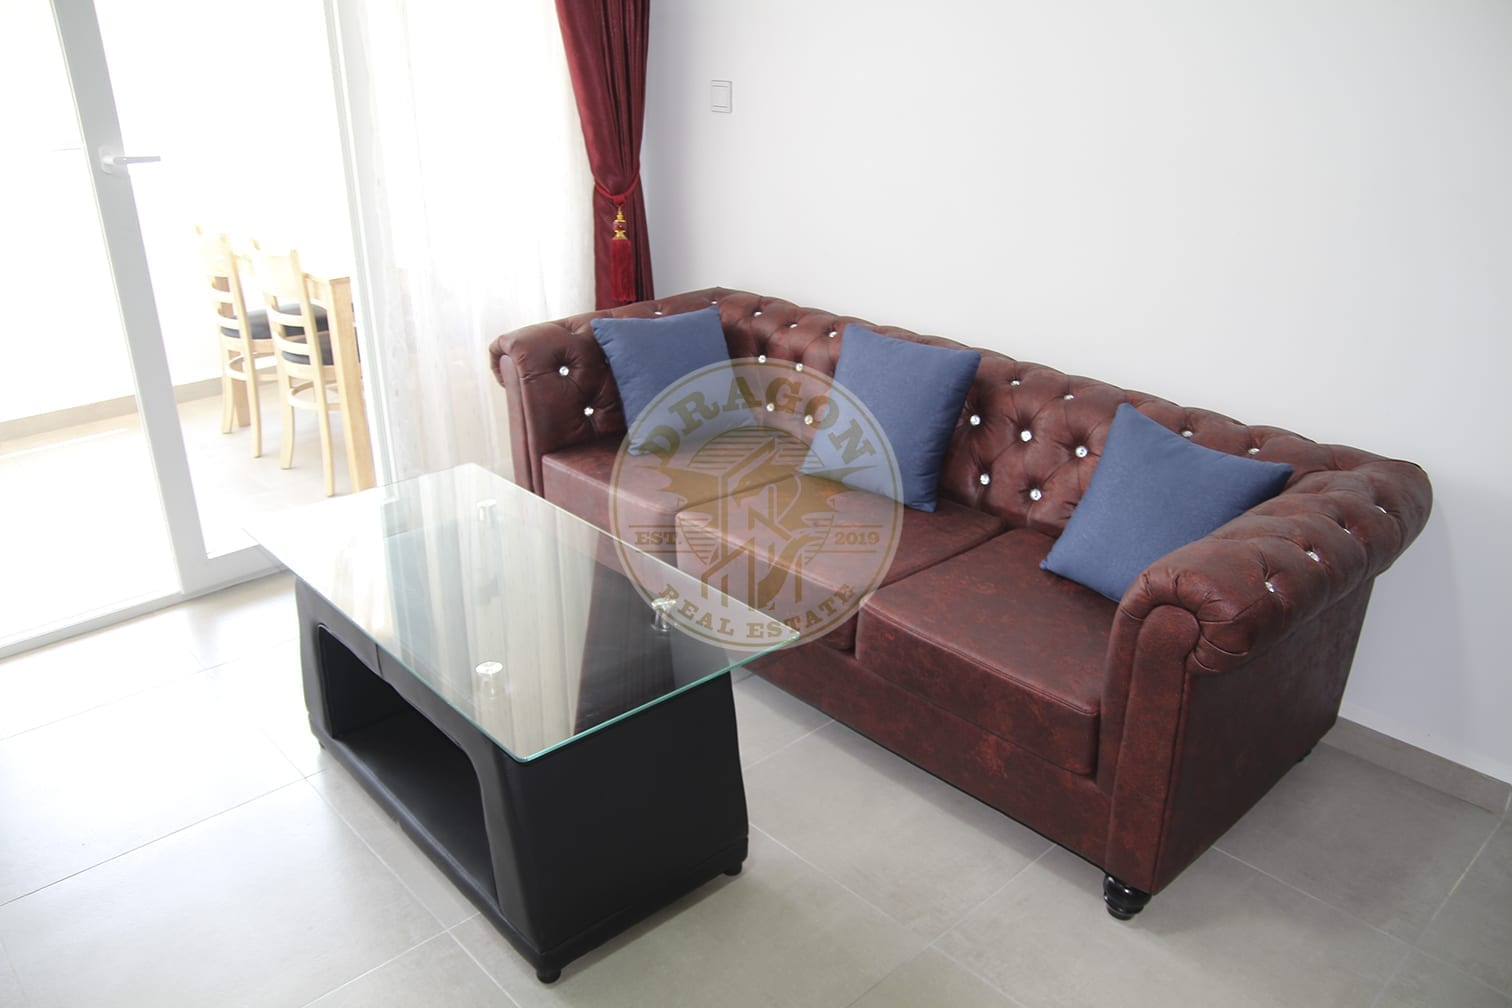 Heartful Apartment for Rent. Sihanoukville Cambodia Property Sale